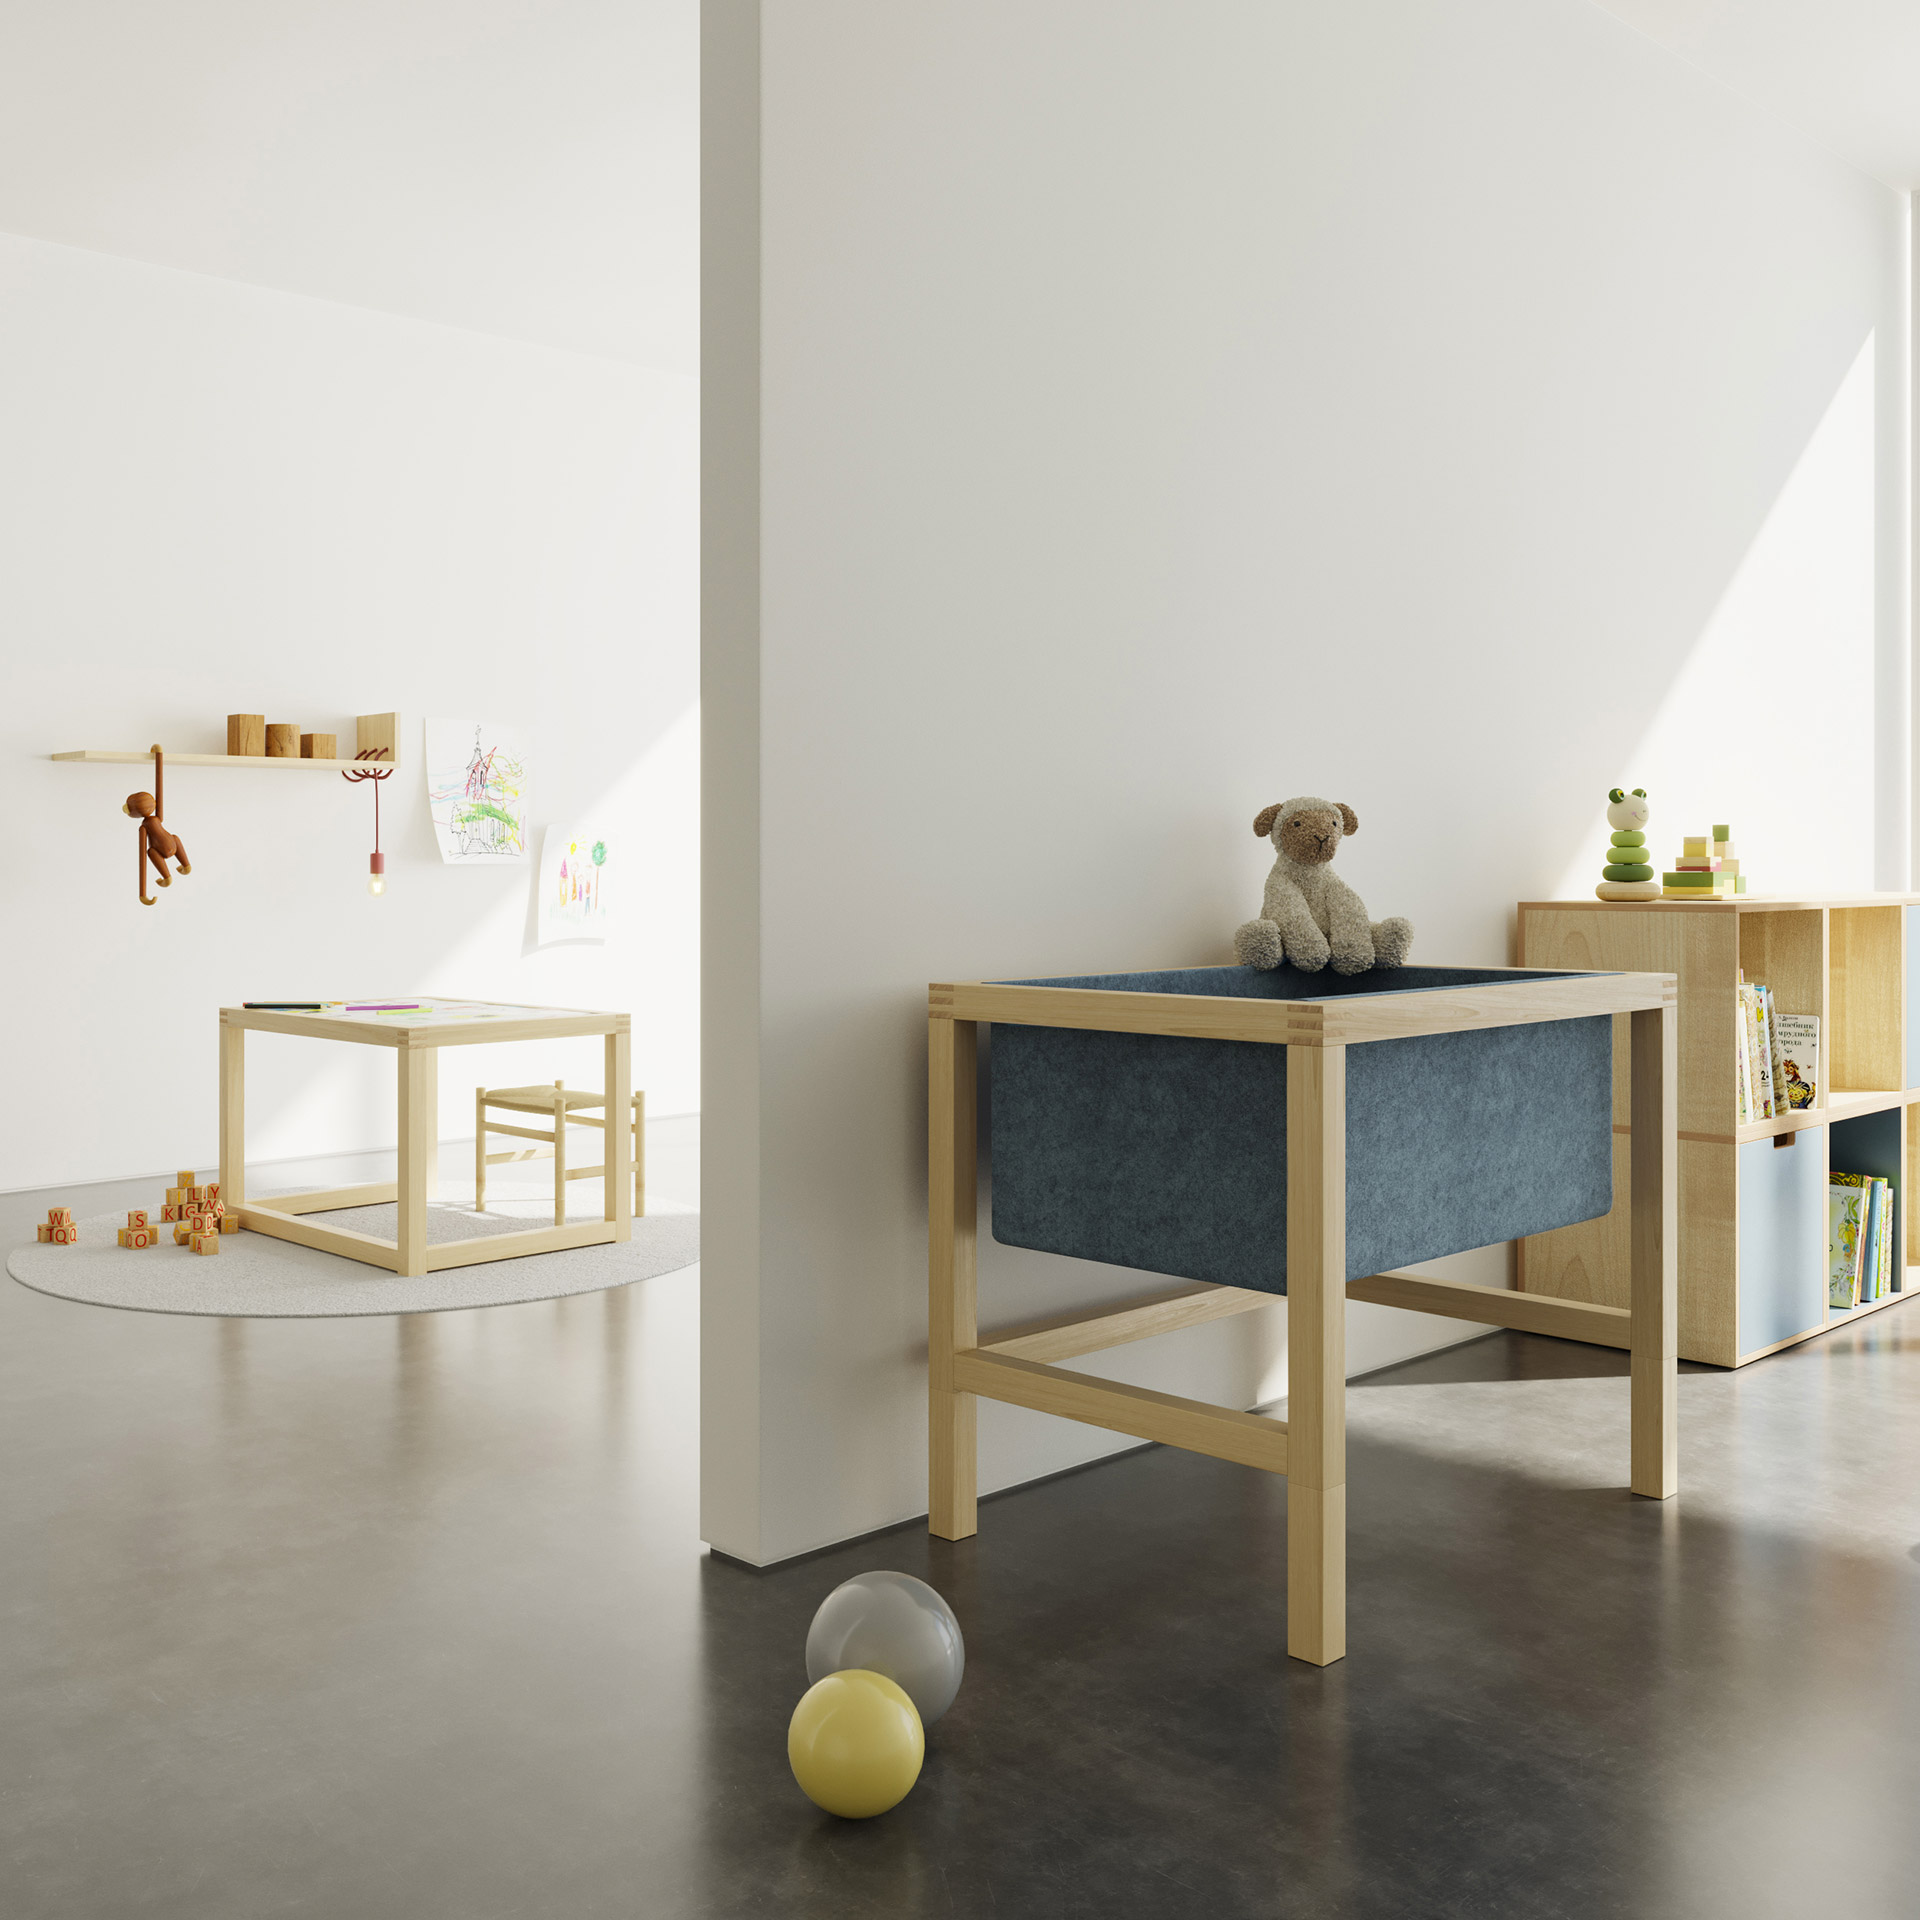 N+L CONVERTIBLE SERIES consists of a baby cradle and a height adjustable drawing table